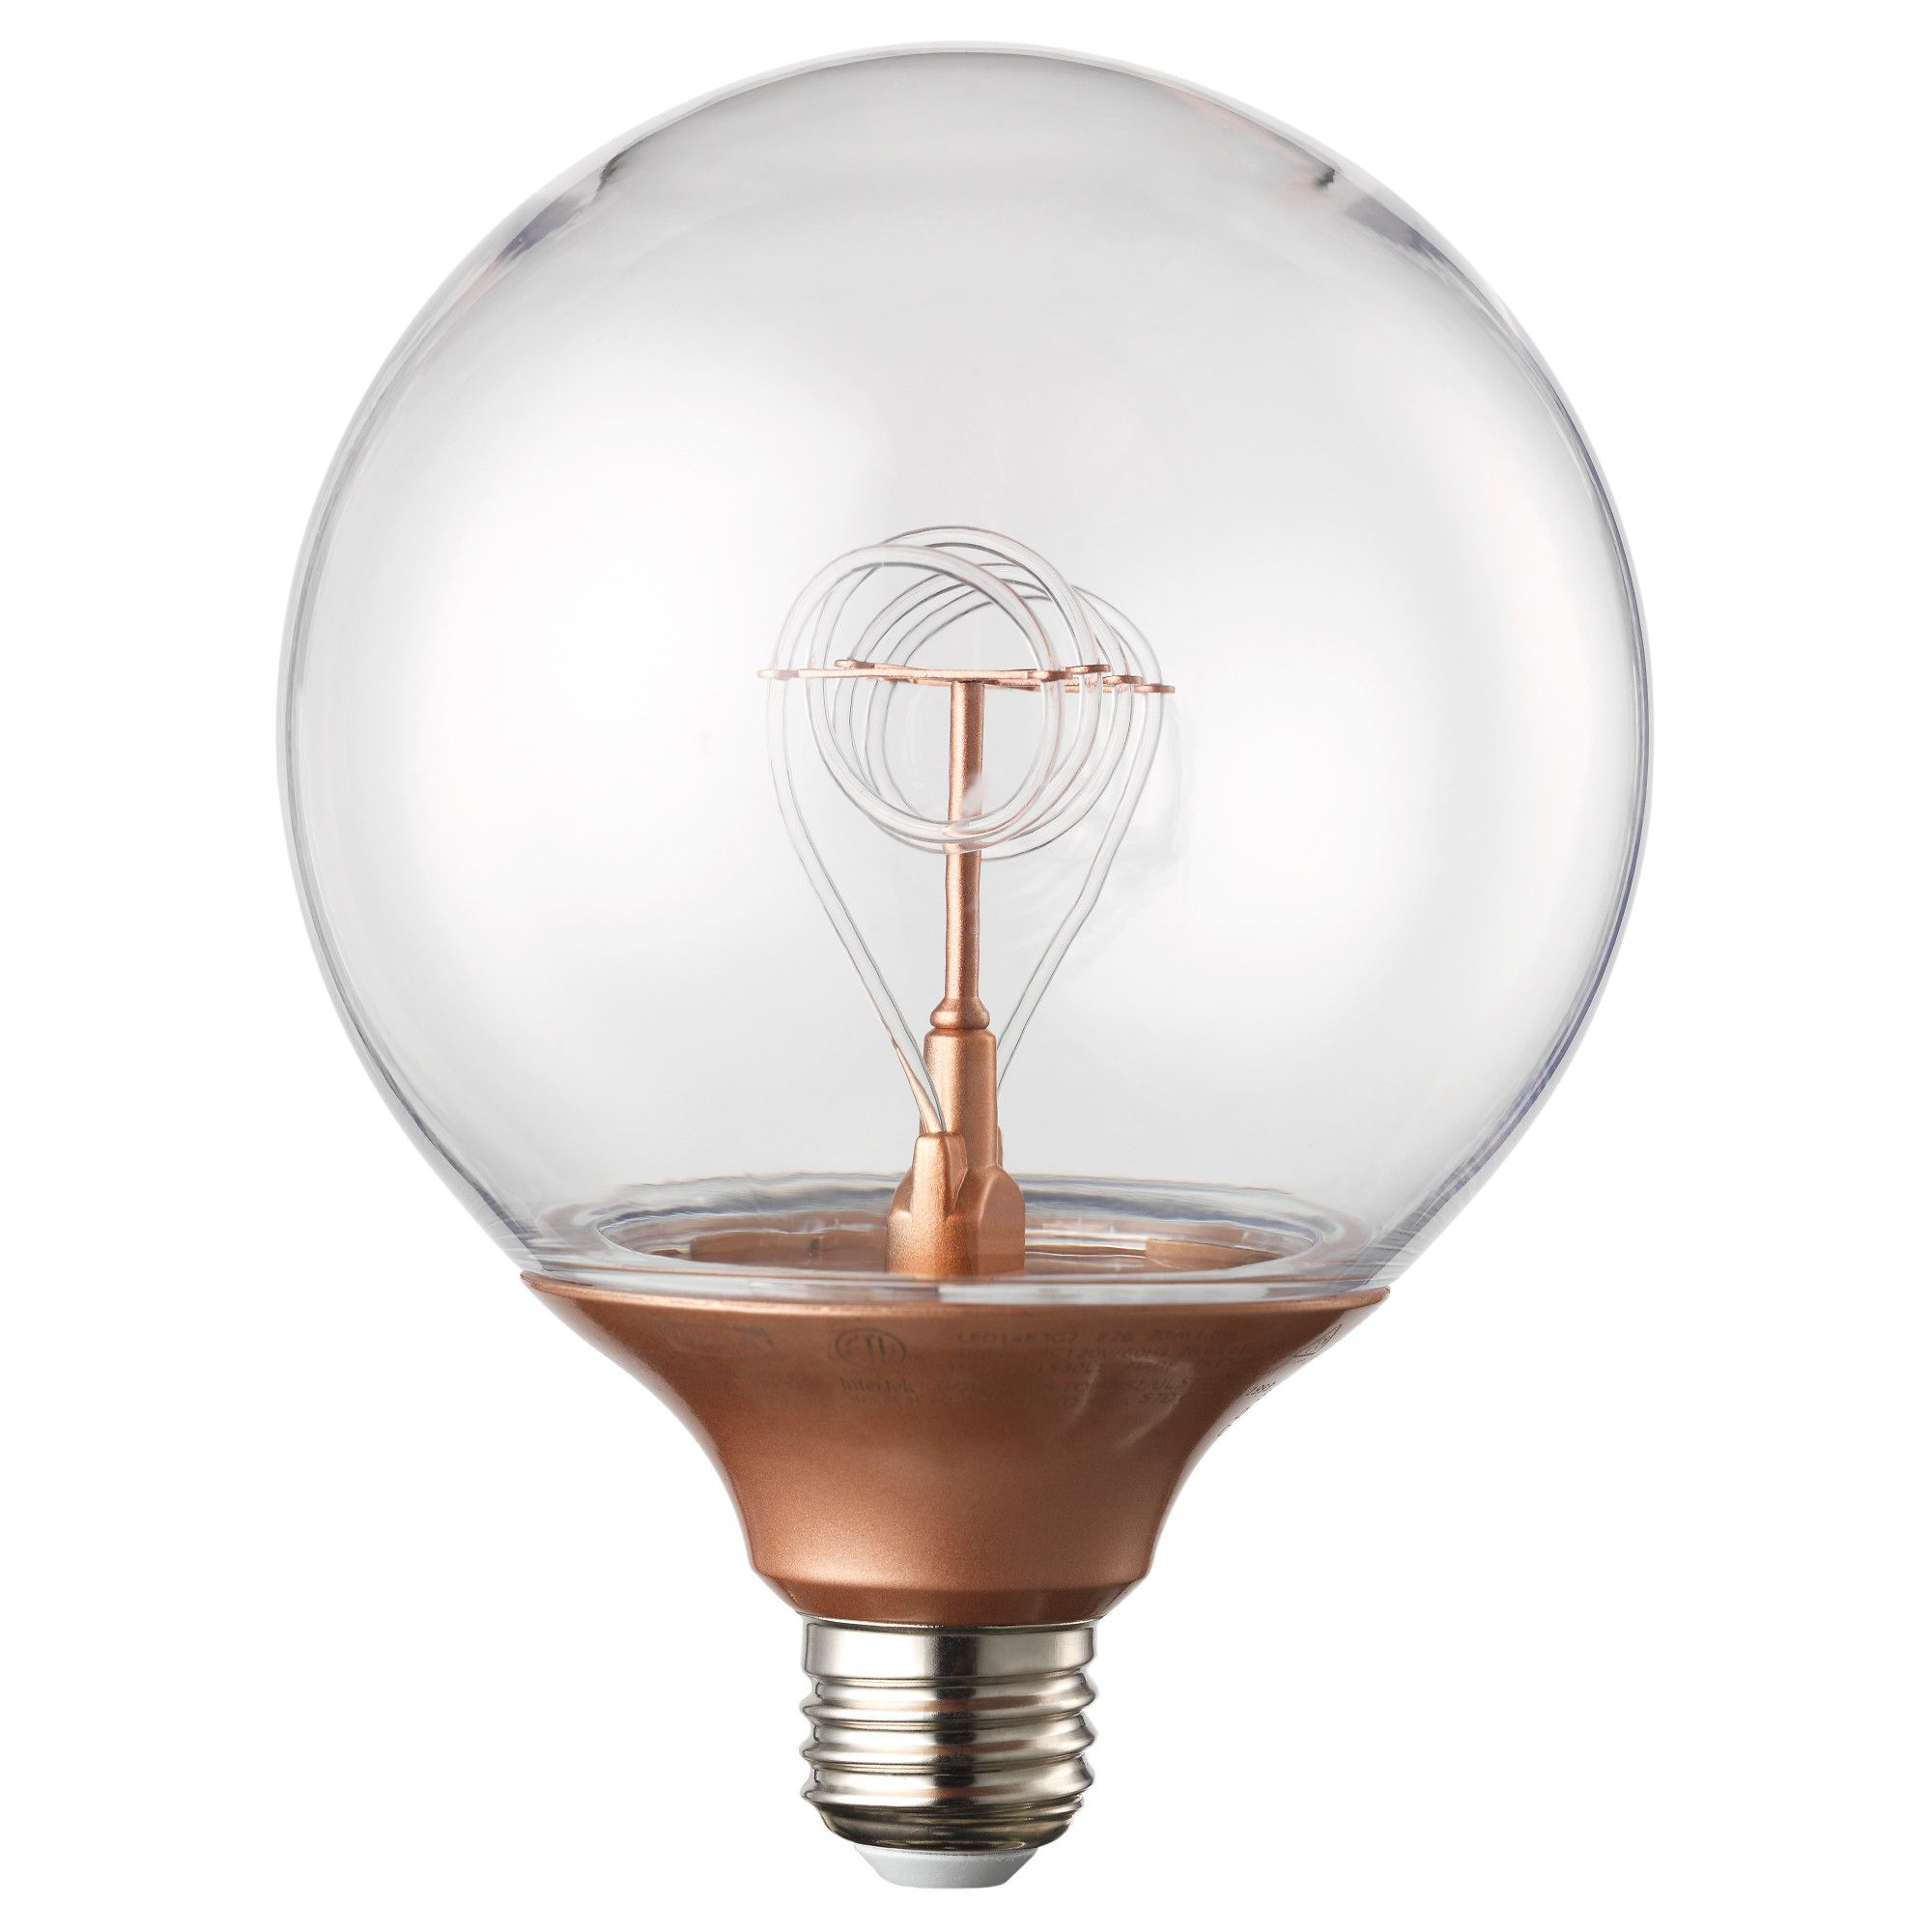 US Furniture and Home Furnishings Bulb, Rustic lamp